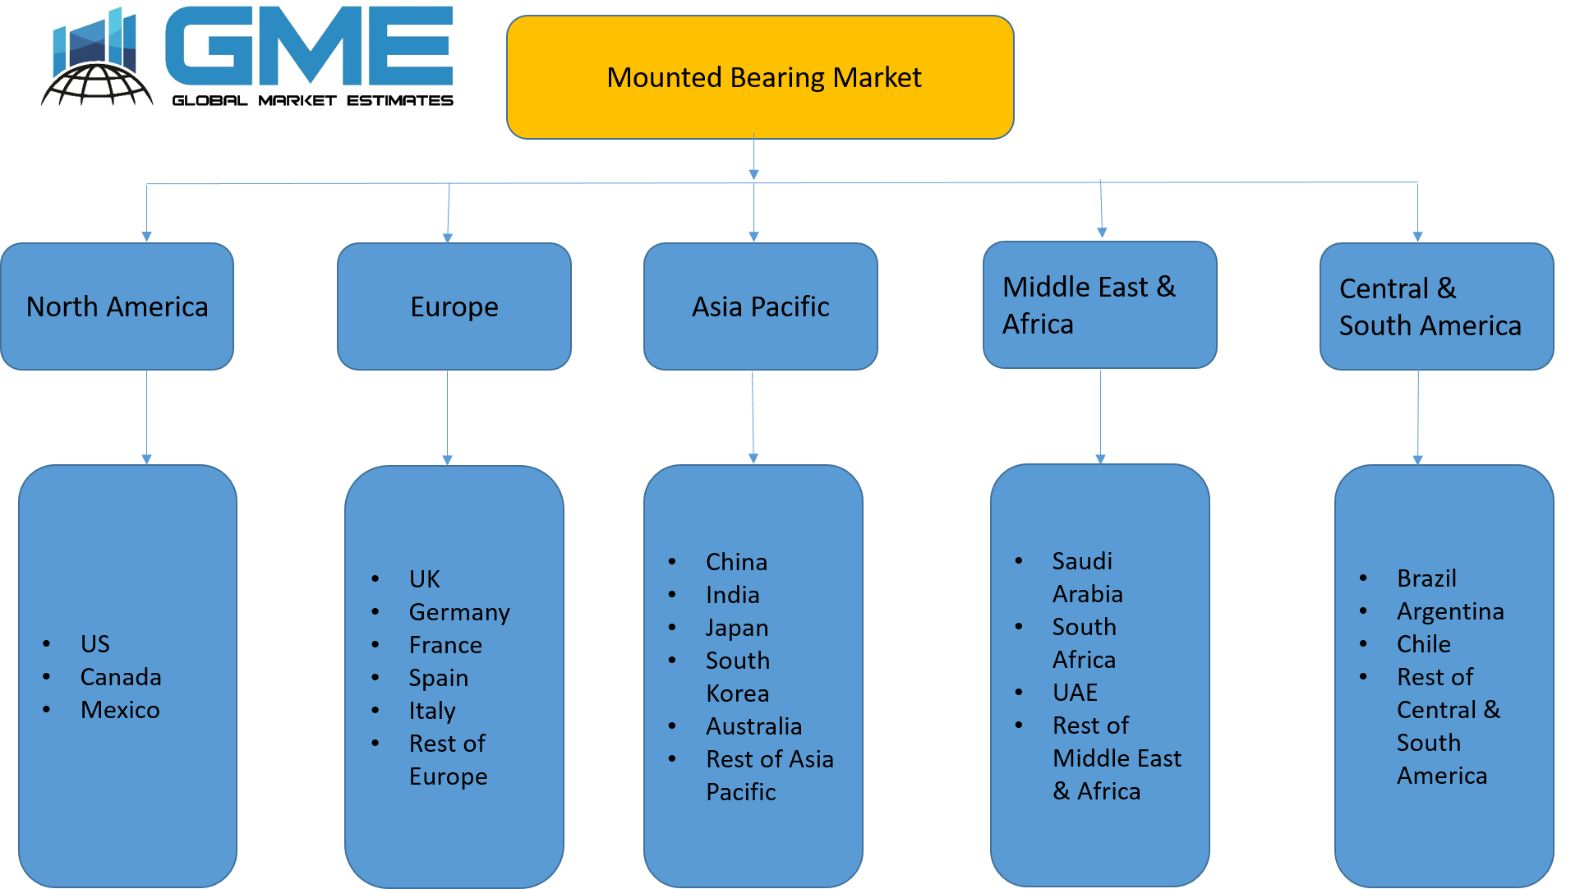 Mounted Bearing Market - Regional Analysis